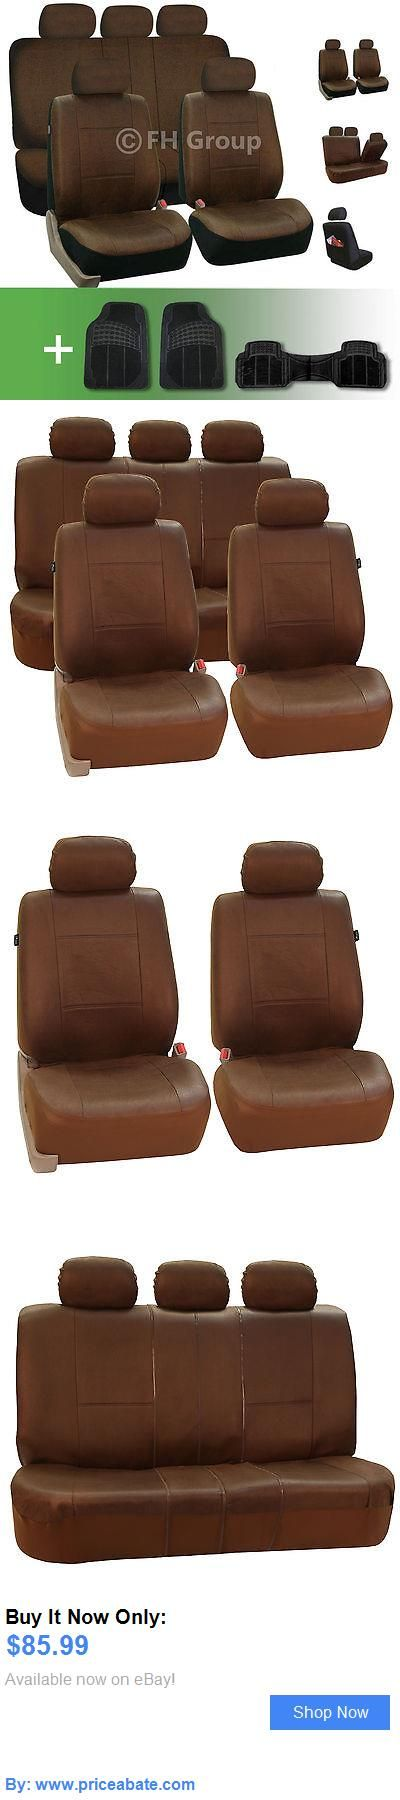 Luxury Cars: Leather Like Full Car Seat Covers Luxury Brown With Floor Mats BUY IT NOW ONLY: $85.99 #priceabateLuxuryCars OR #priceabate